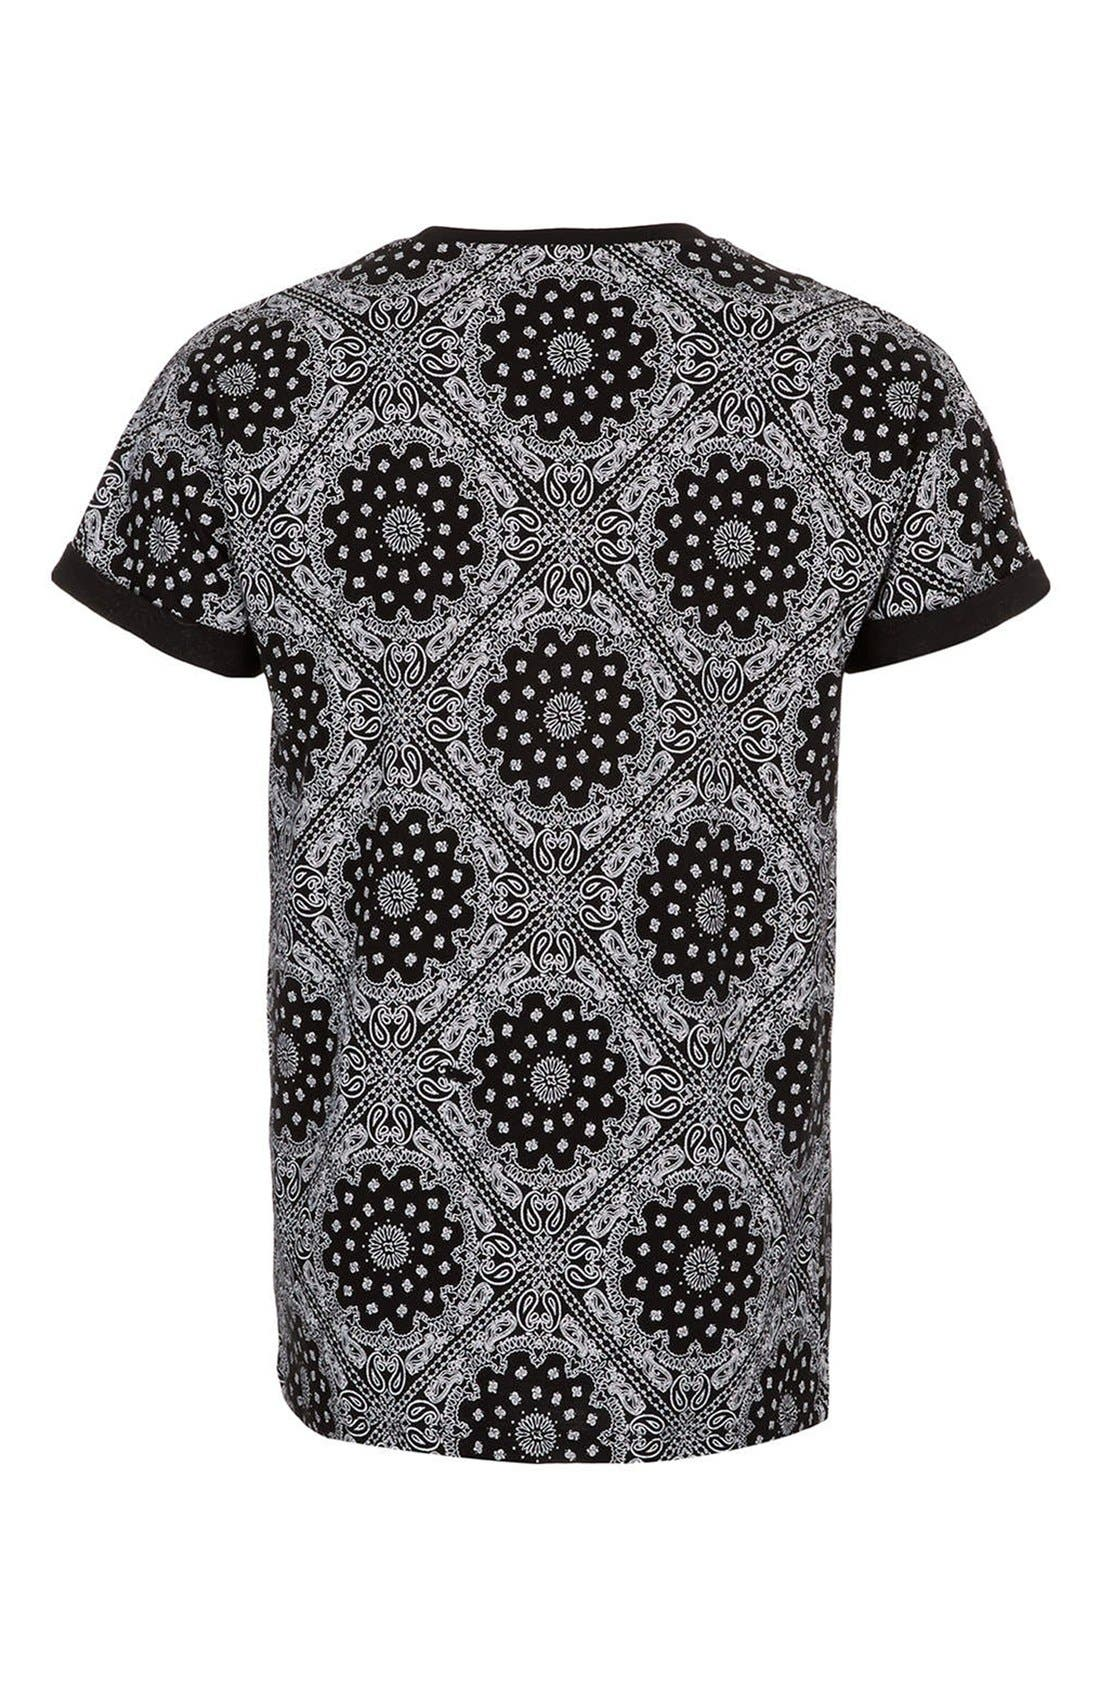 Alternate Image 2  - Topman Bandana Print Cotton Tee